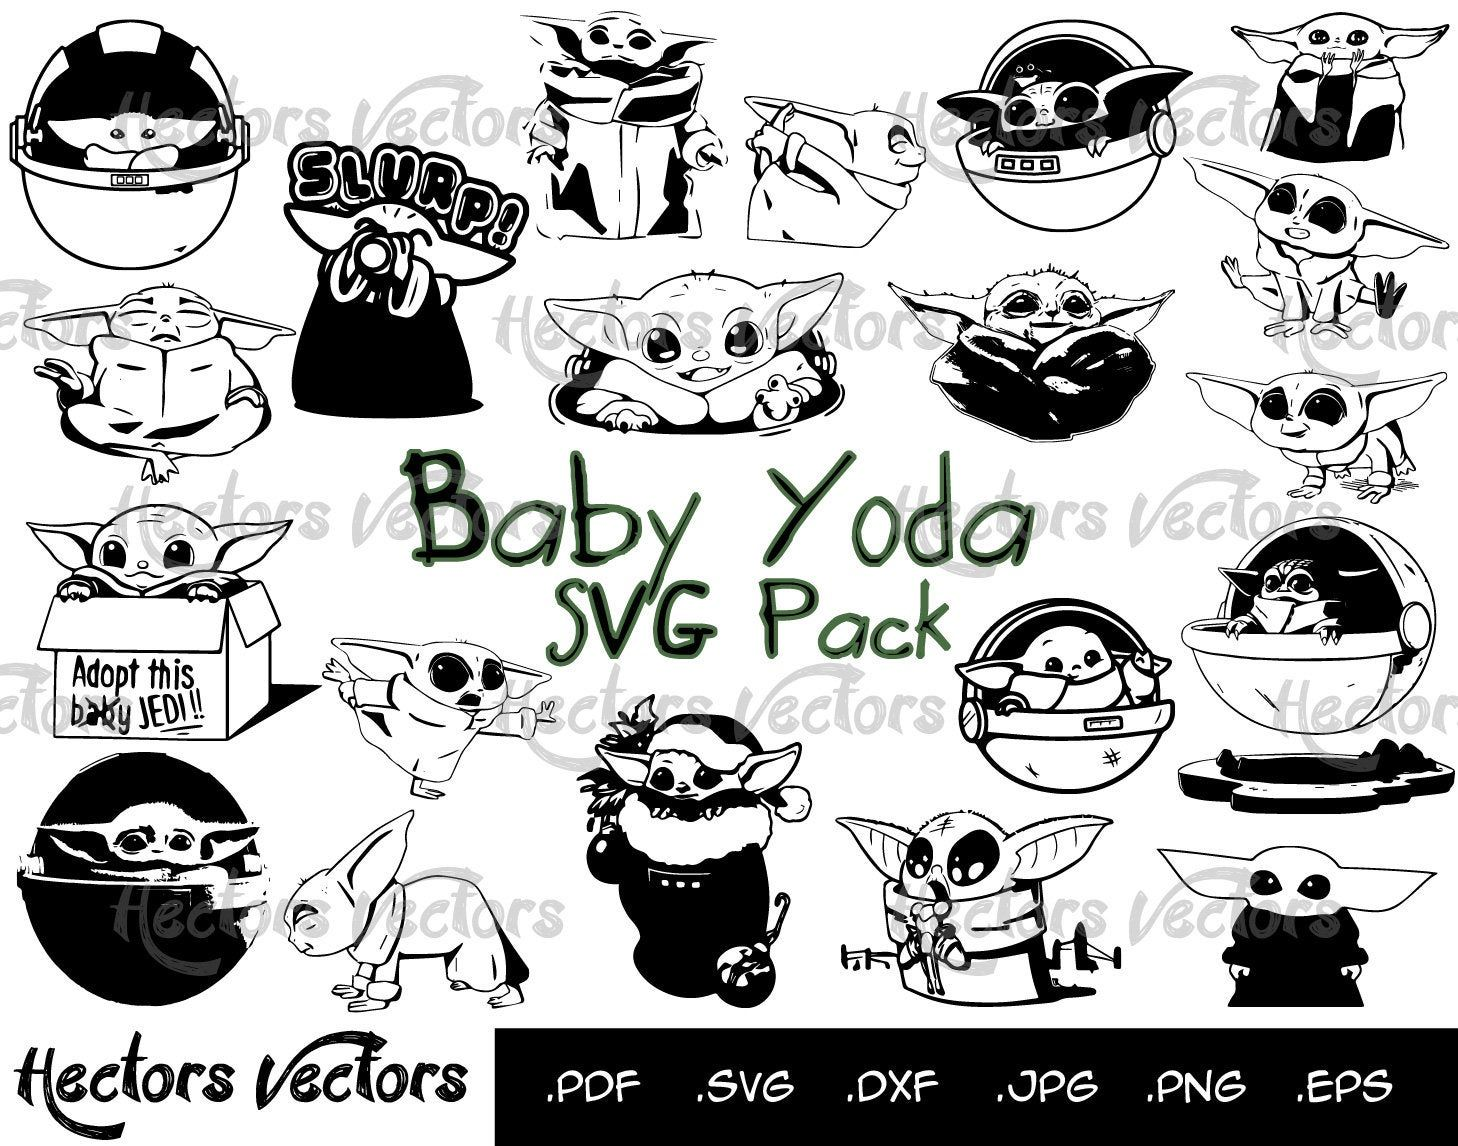 Baby Yoda Svg Baby Yoda Baby Yoda Vector Baby Yoda Silhouette The Child Svg Jedi Svg Star Wars Svg Mini Y In 2020 Yoda Drawing Star Wars Drawings Yoda